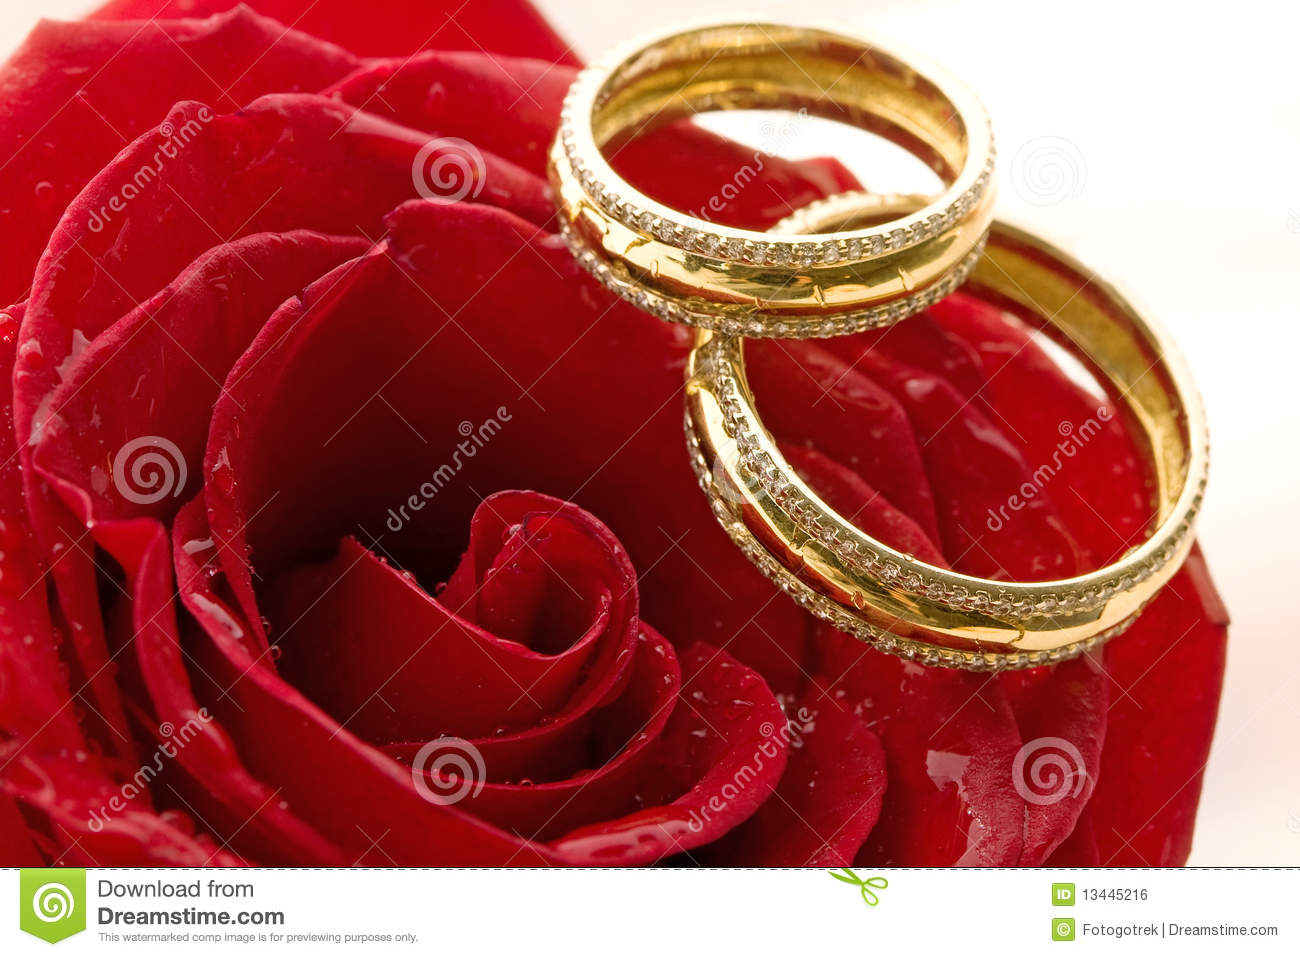 Ring Ceremony Hd Wallpaper Two Wedding Rings And Red Roses Stock Photo Image Of